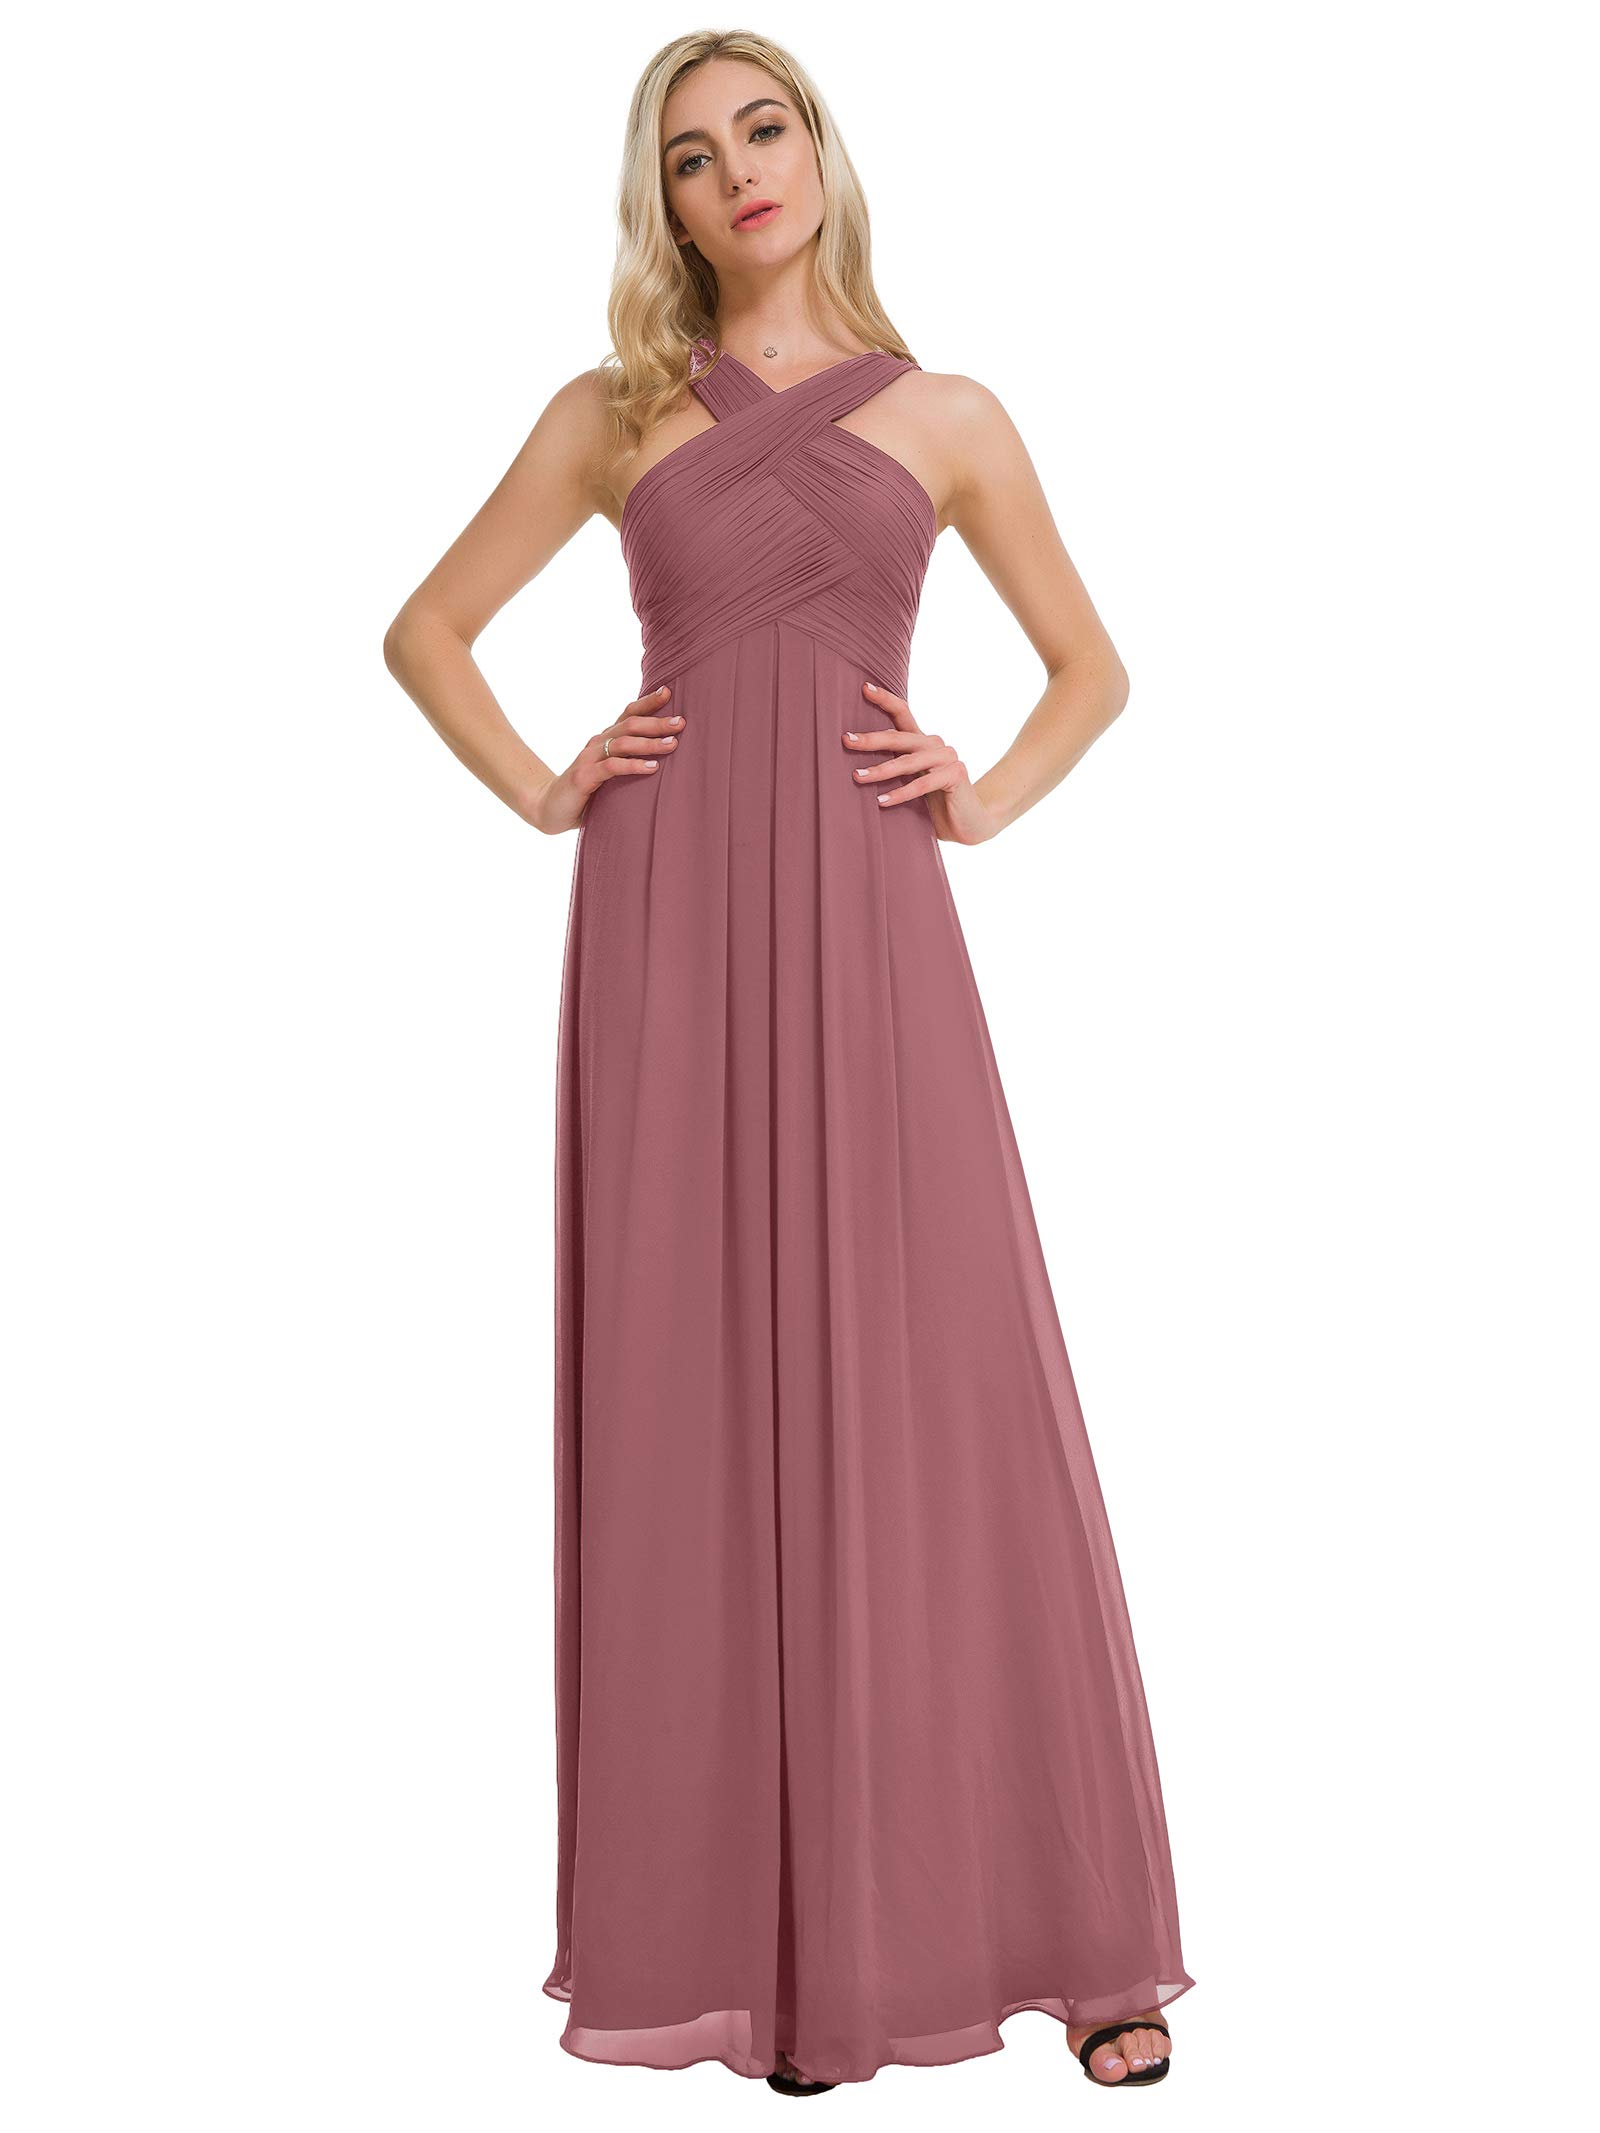 f57a59f296aa Alicepub Pleated Chiffon Bridesmaid Dresses Formal Party Evening Gown Maxi  Dress for Women, Dusty Rose, US6